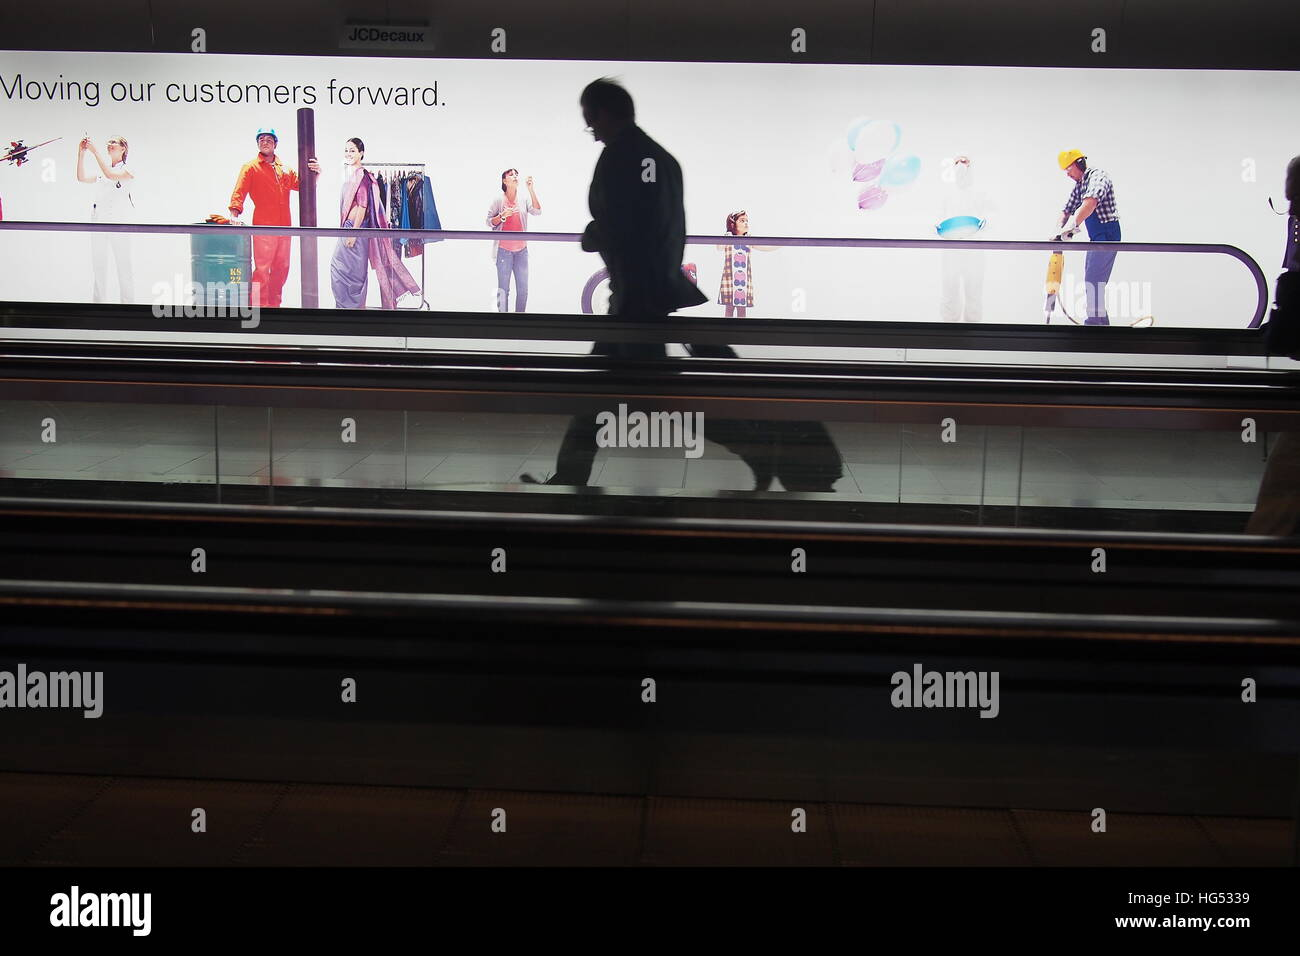 man rushing on moving walkway at an airport - Stock Image